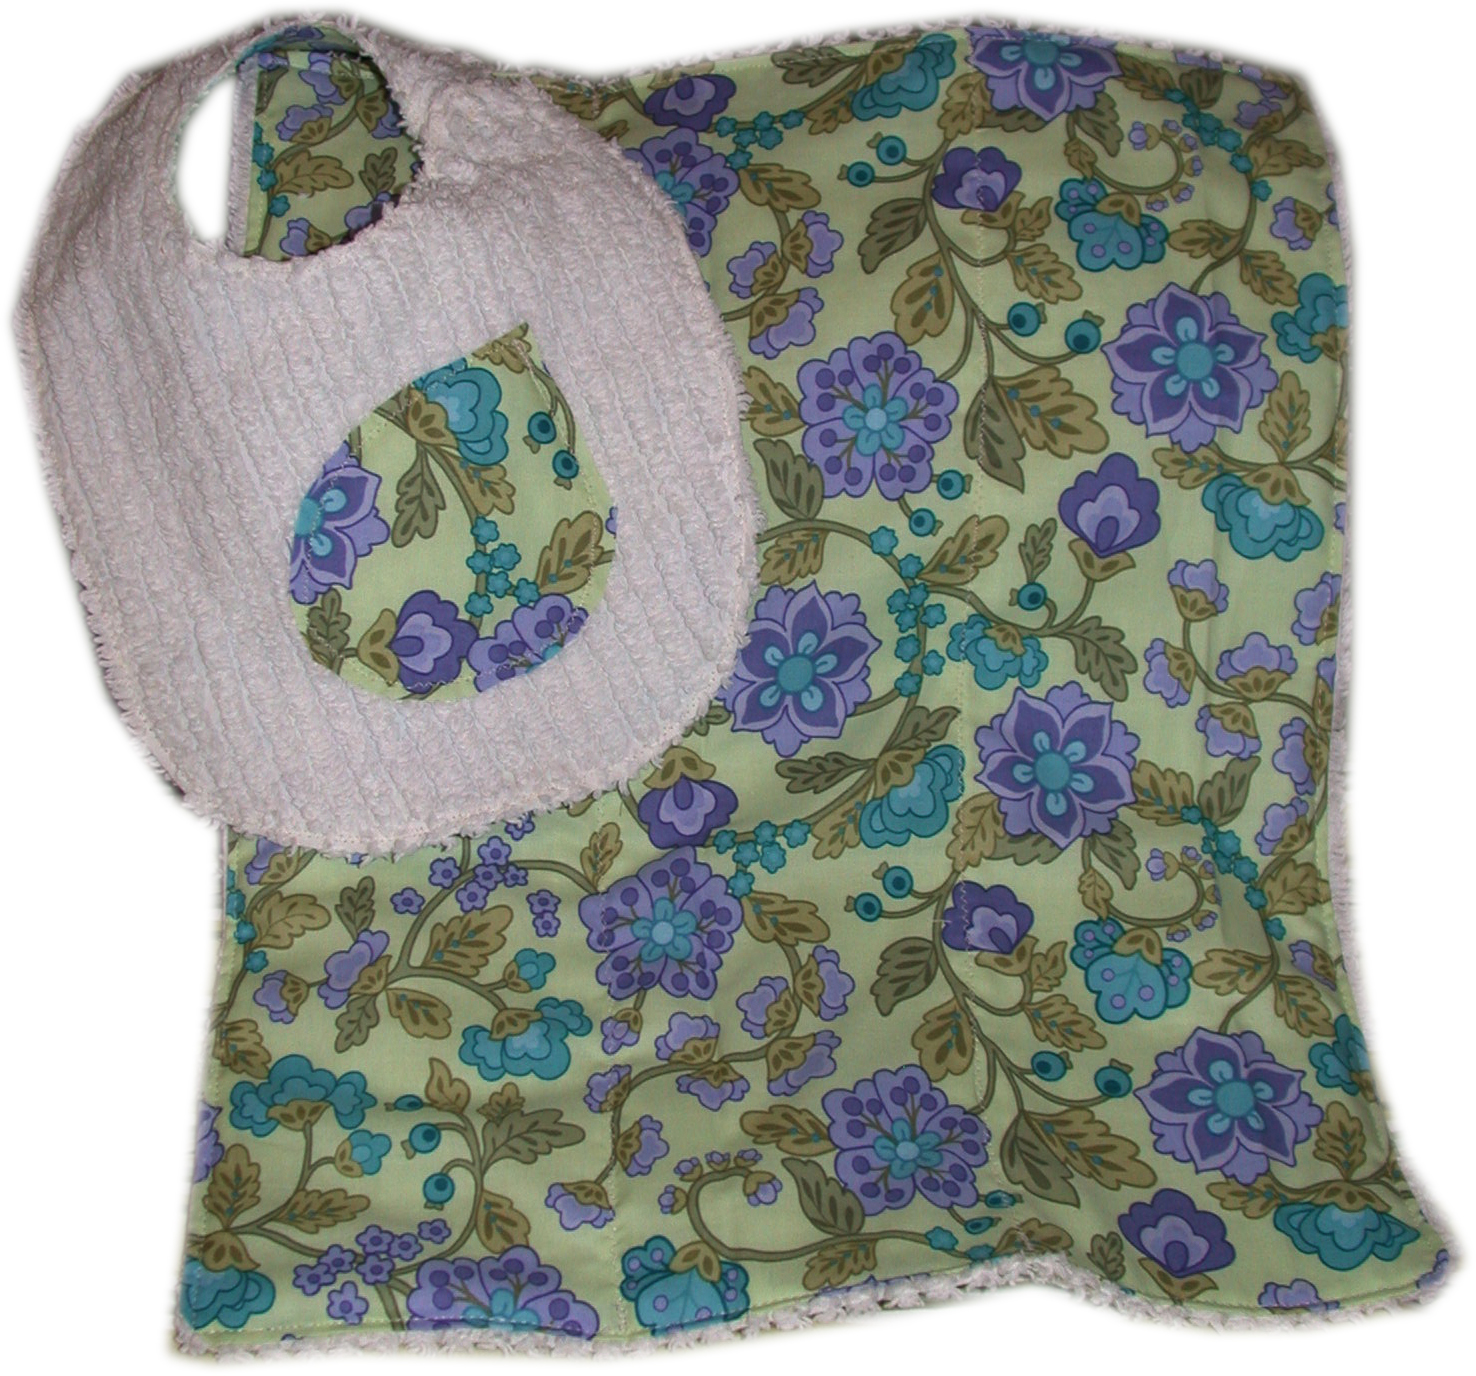 Set of Reversible Chenille Bib and Burp Cloth, Green & Violet [TDBBS0016] - $15.00 : Tiddle Diddle Handmade Shoppe, every design is unique, because unique is gift! :  baby gifts gifts for expecting parents burps set of reversible chenille bib and burp cloth